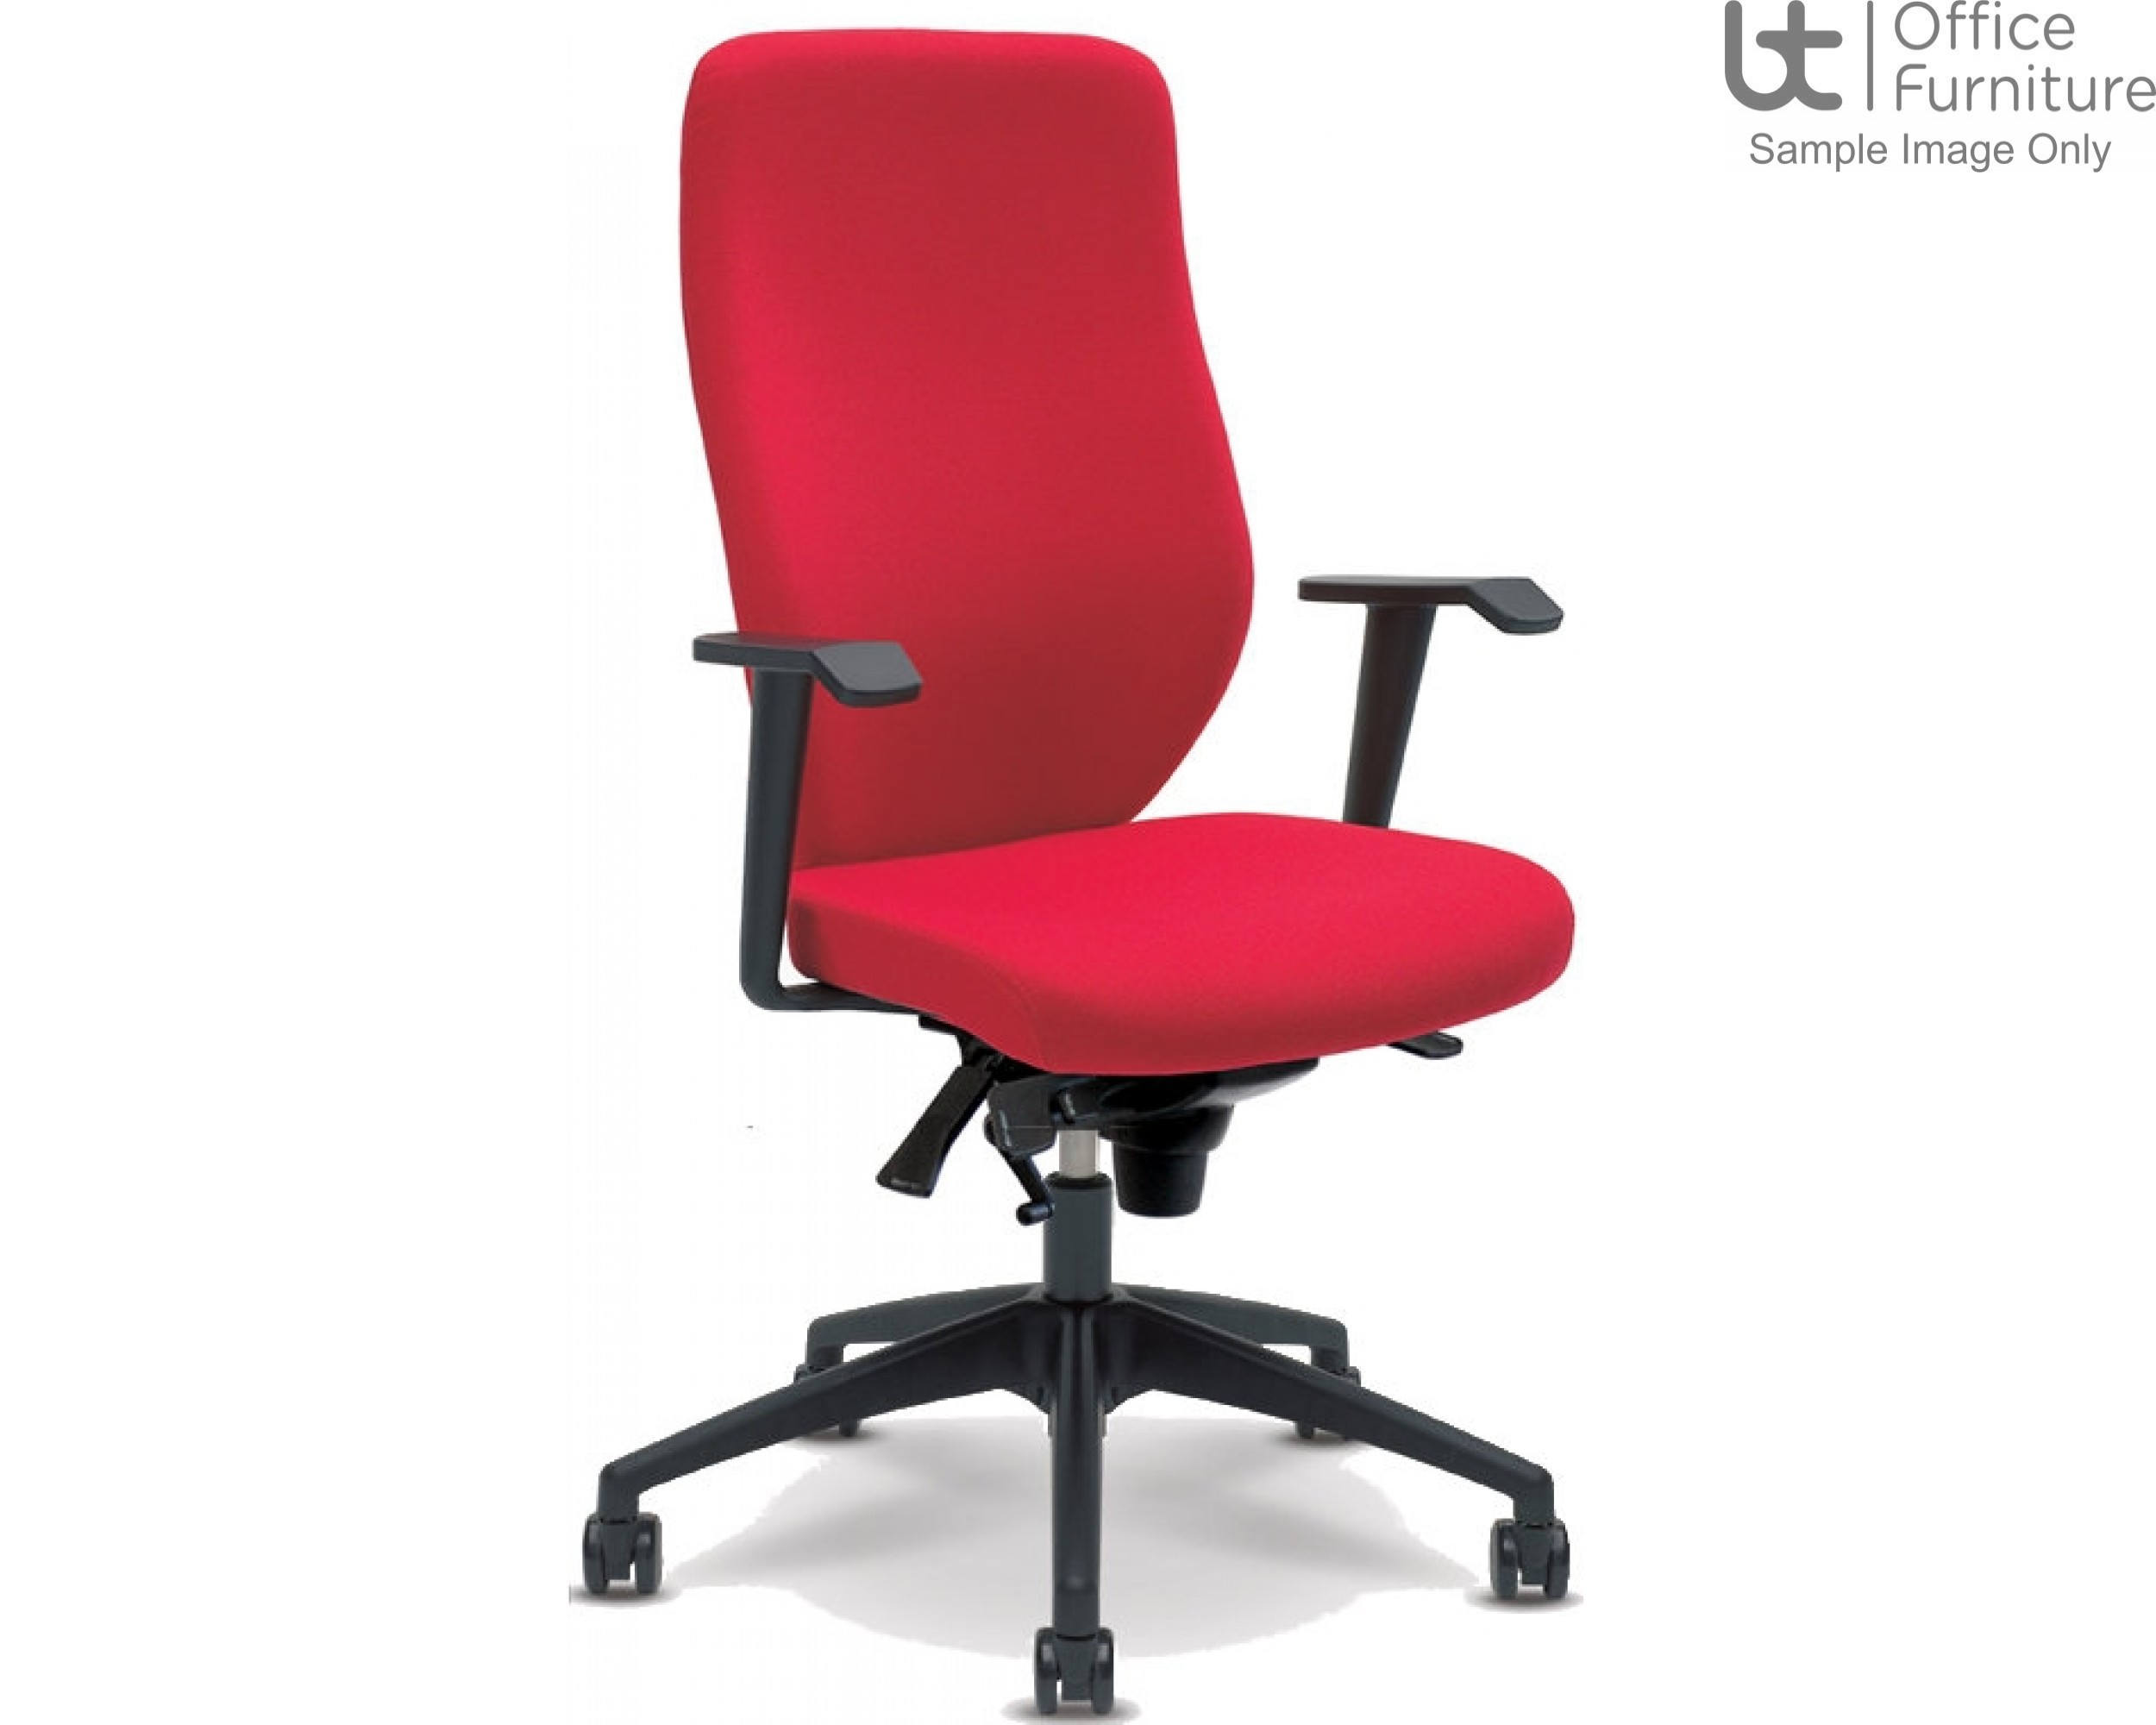 Verco Operator/Task Chair - Profile High Back Task Chair with Arms